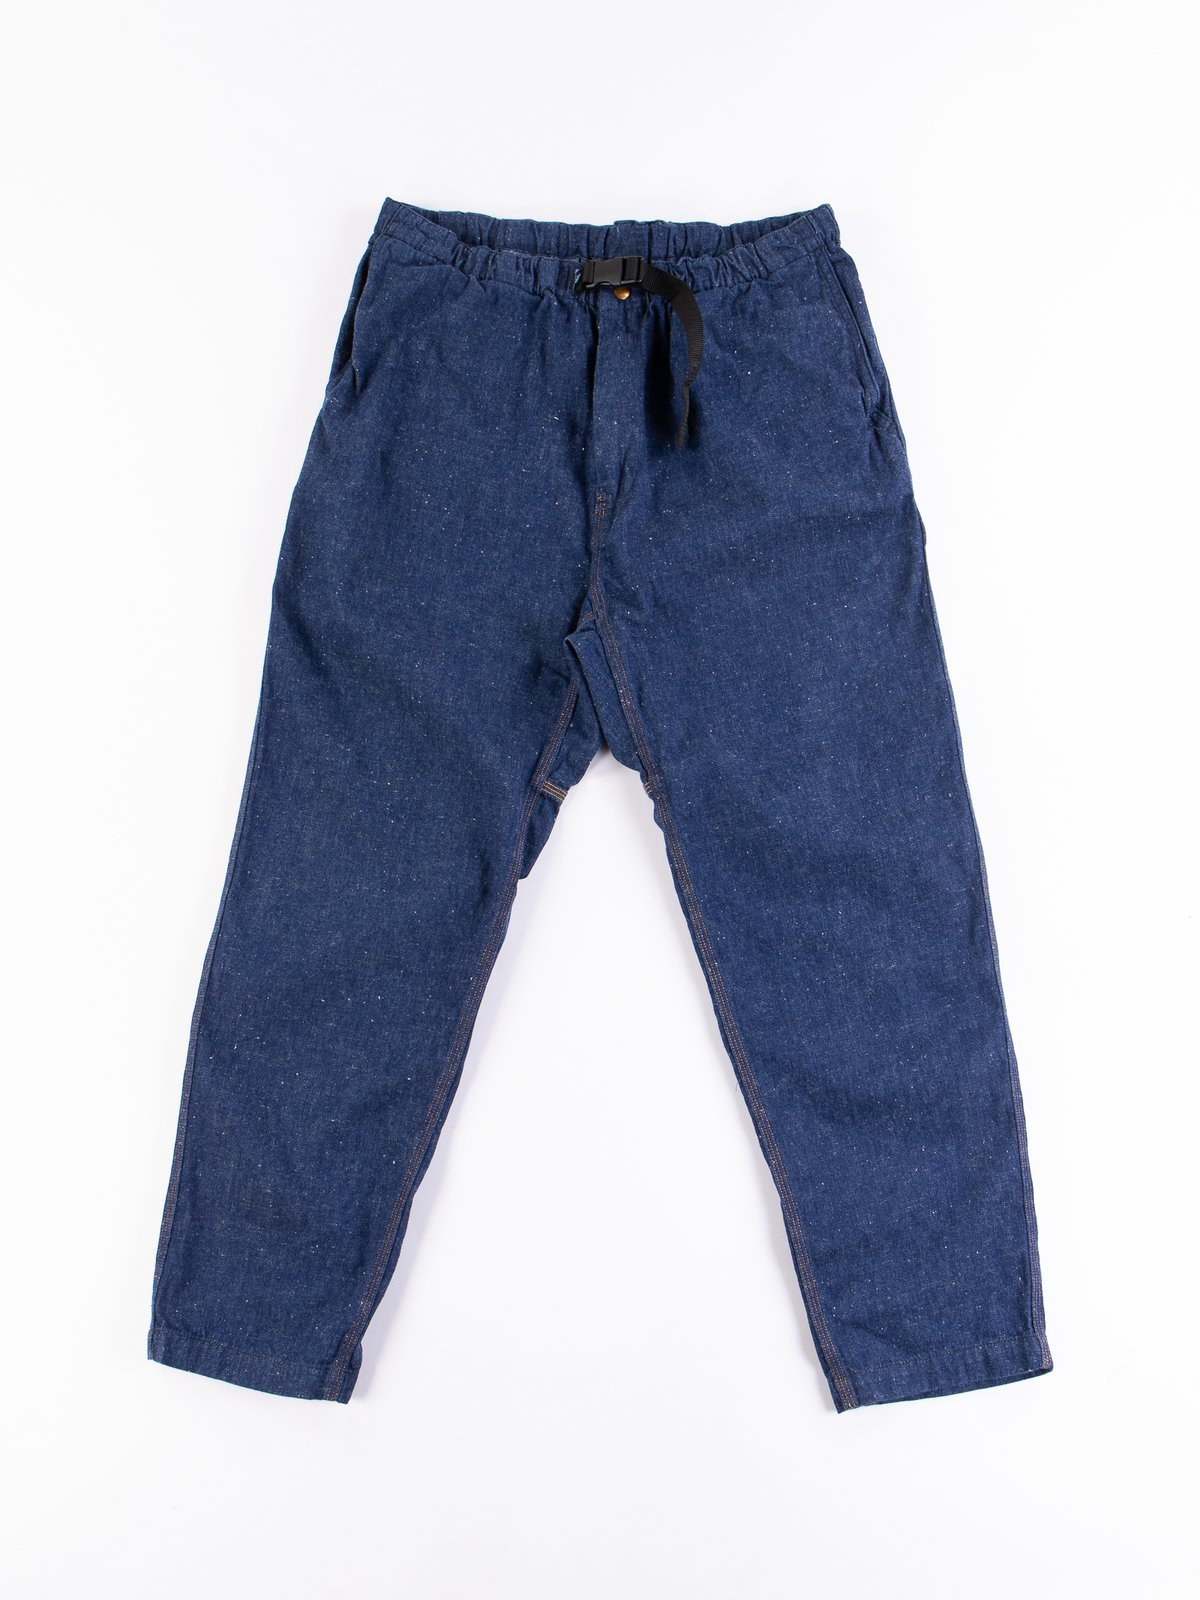 One Wash Denim TBB Climbing Pant - Image 1